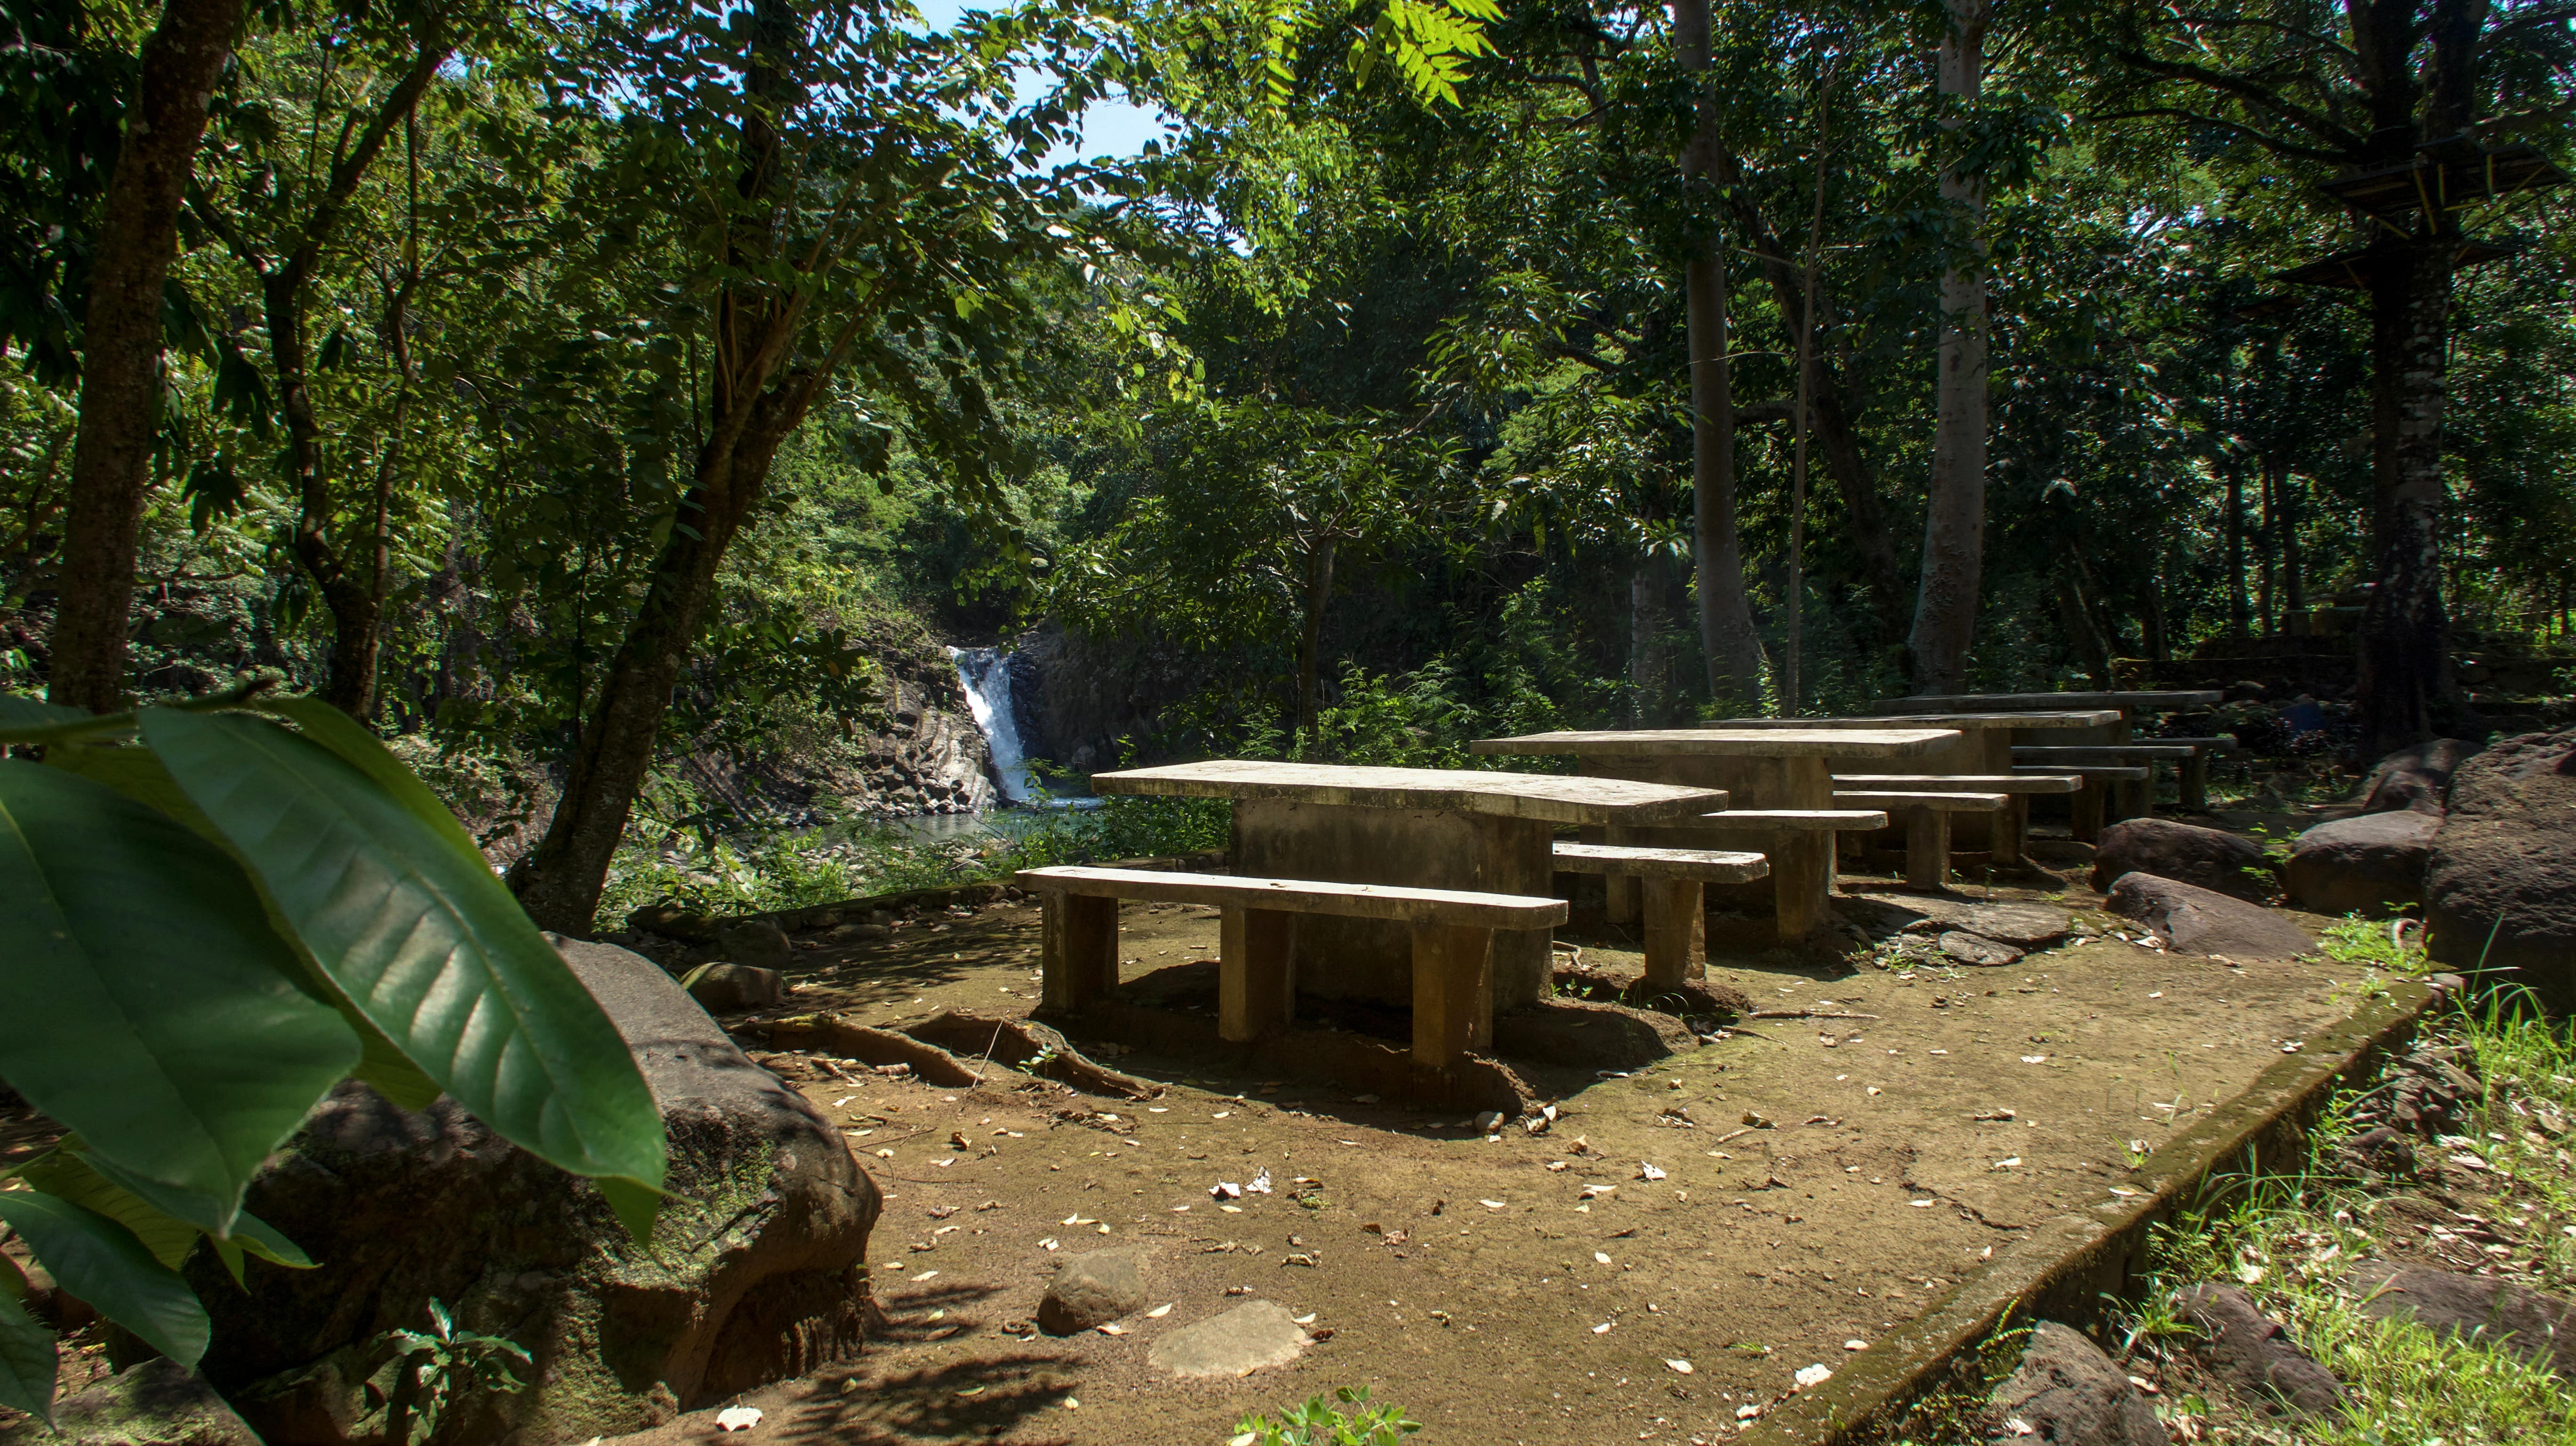 picnic tables at dunsulan falls in bataan philippines